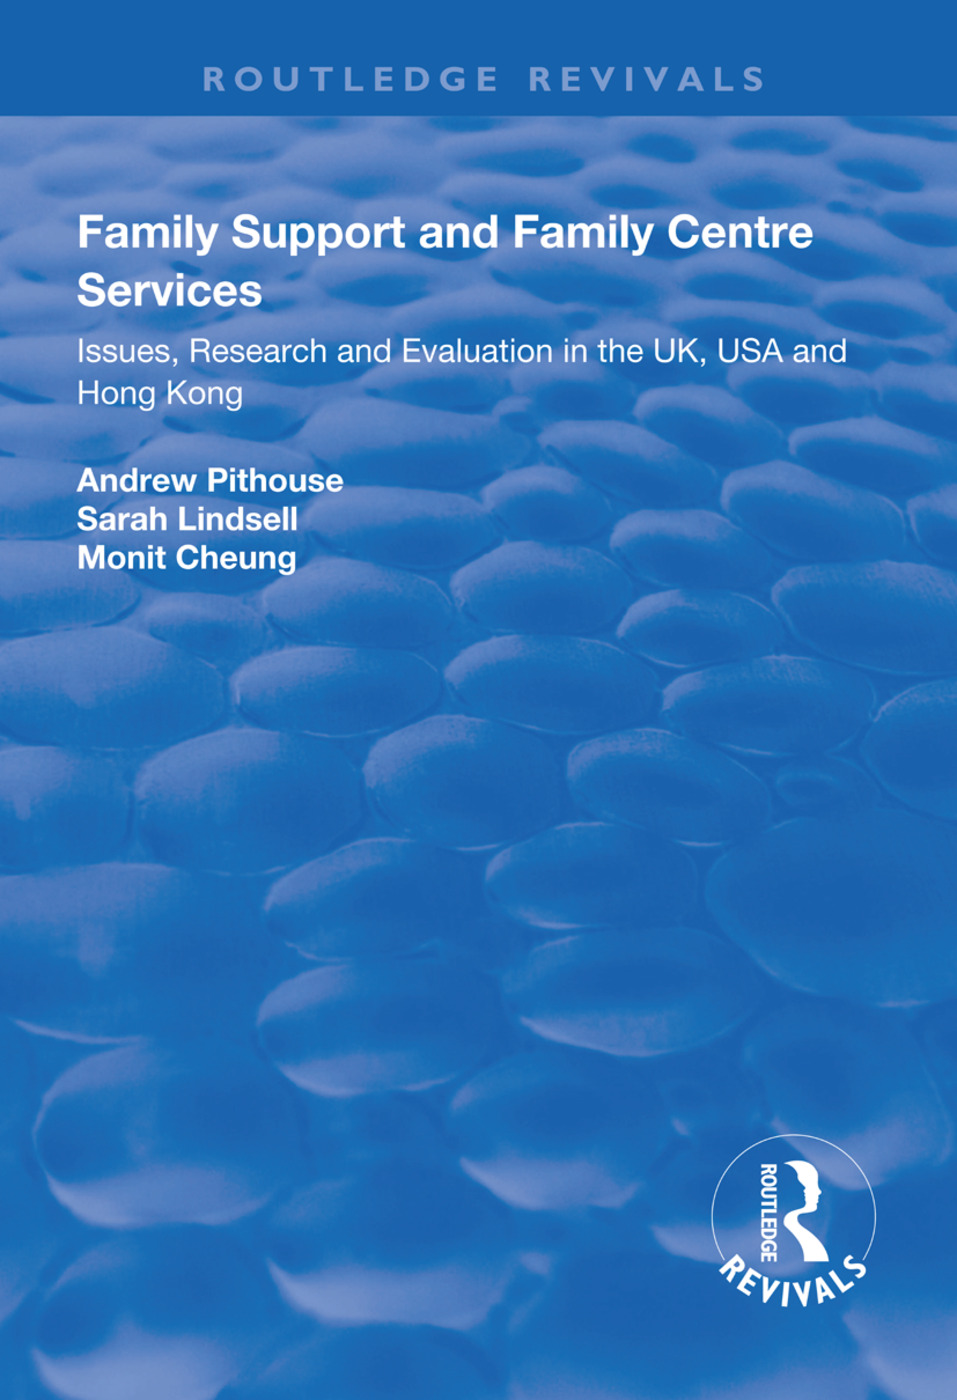 Family Support and Family Centre Services